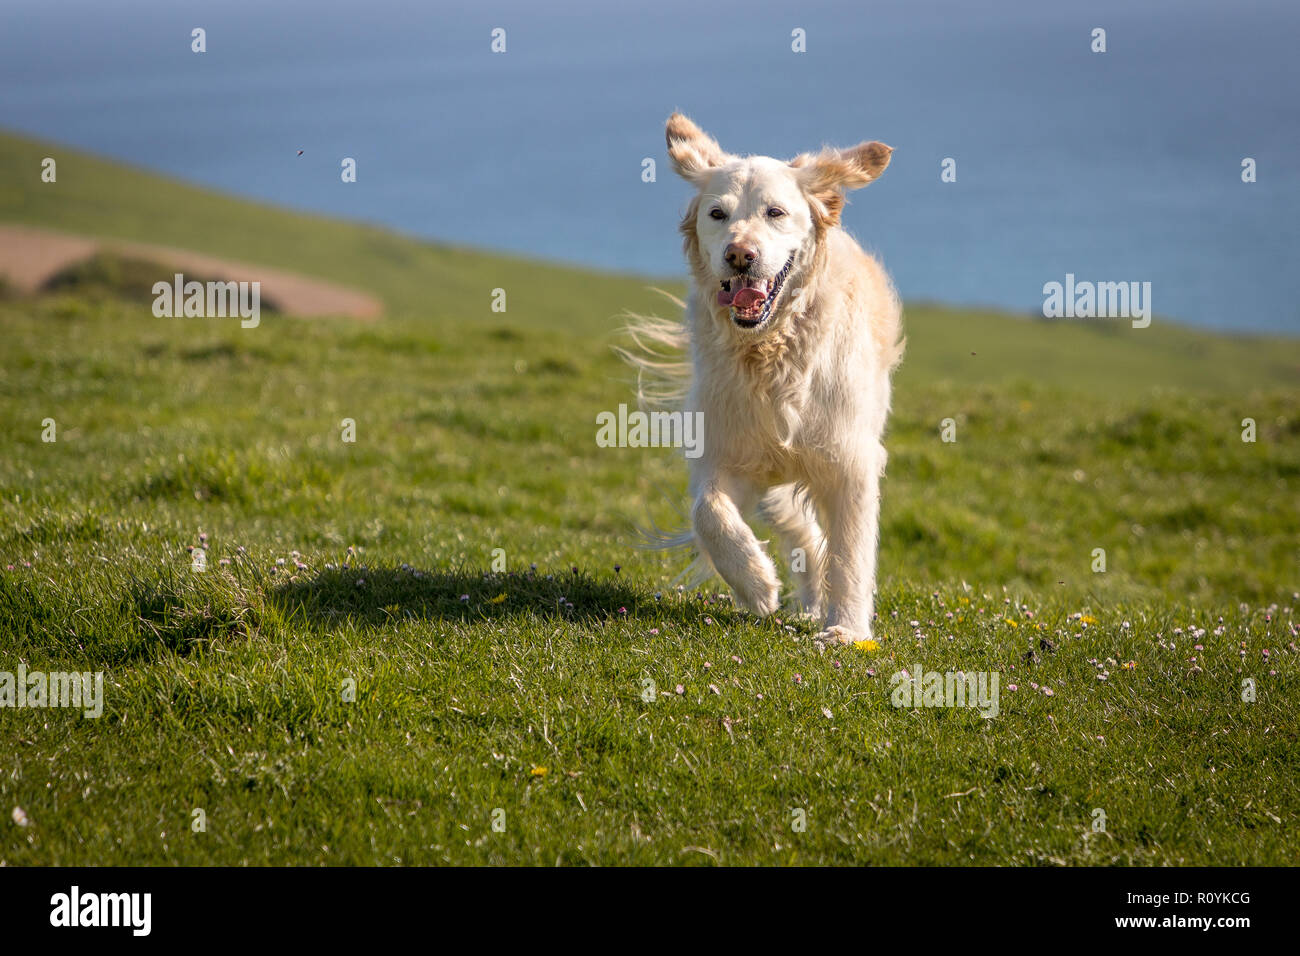 Happy golden retriever dog running with floppy ears on hill - Stock Image